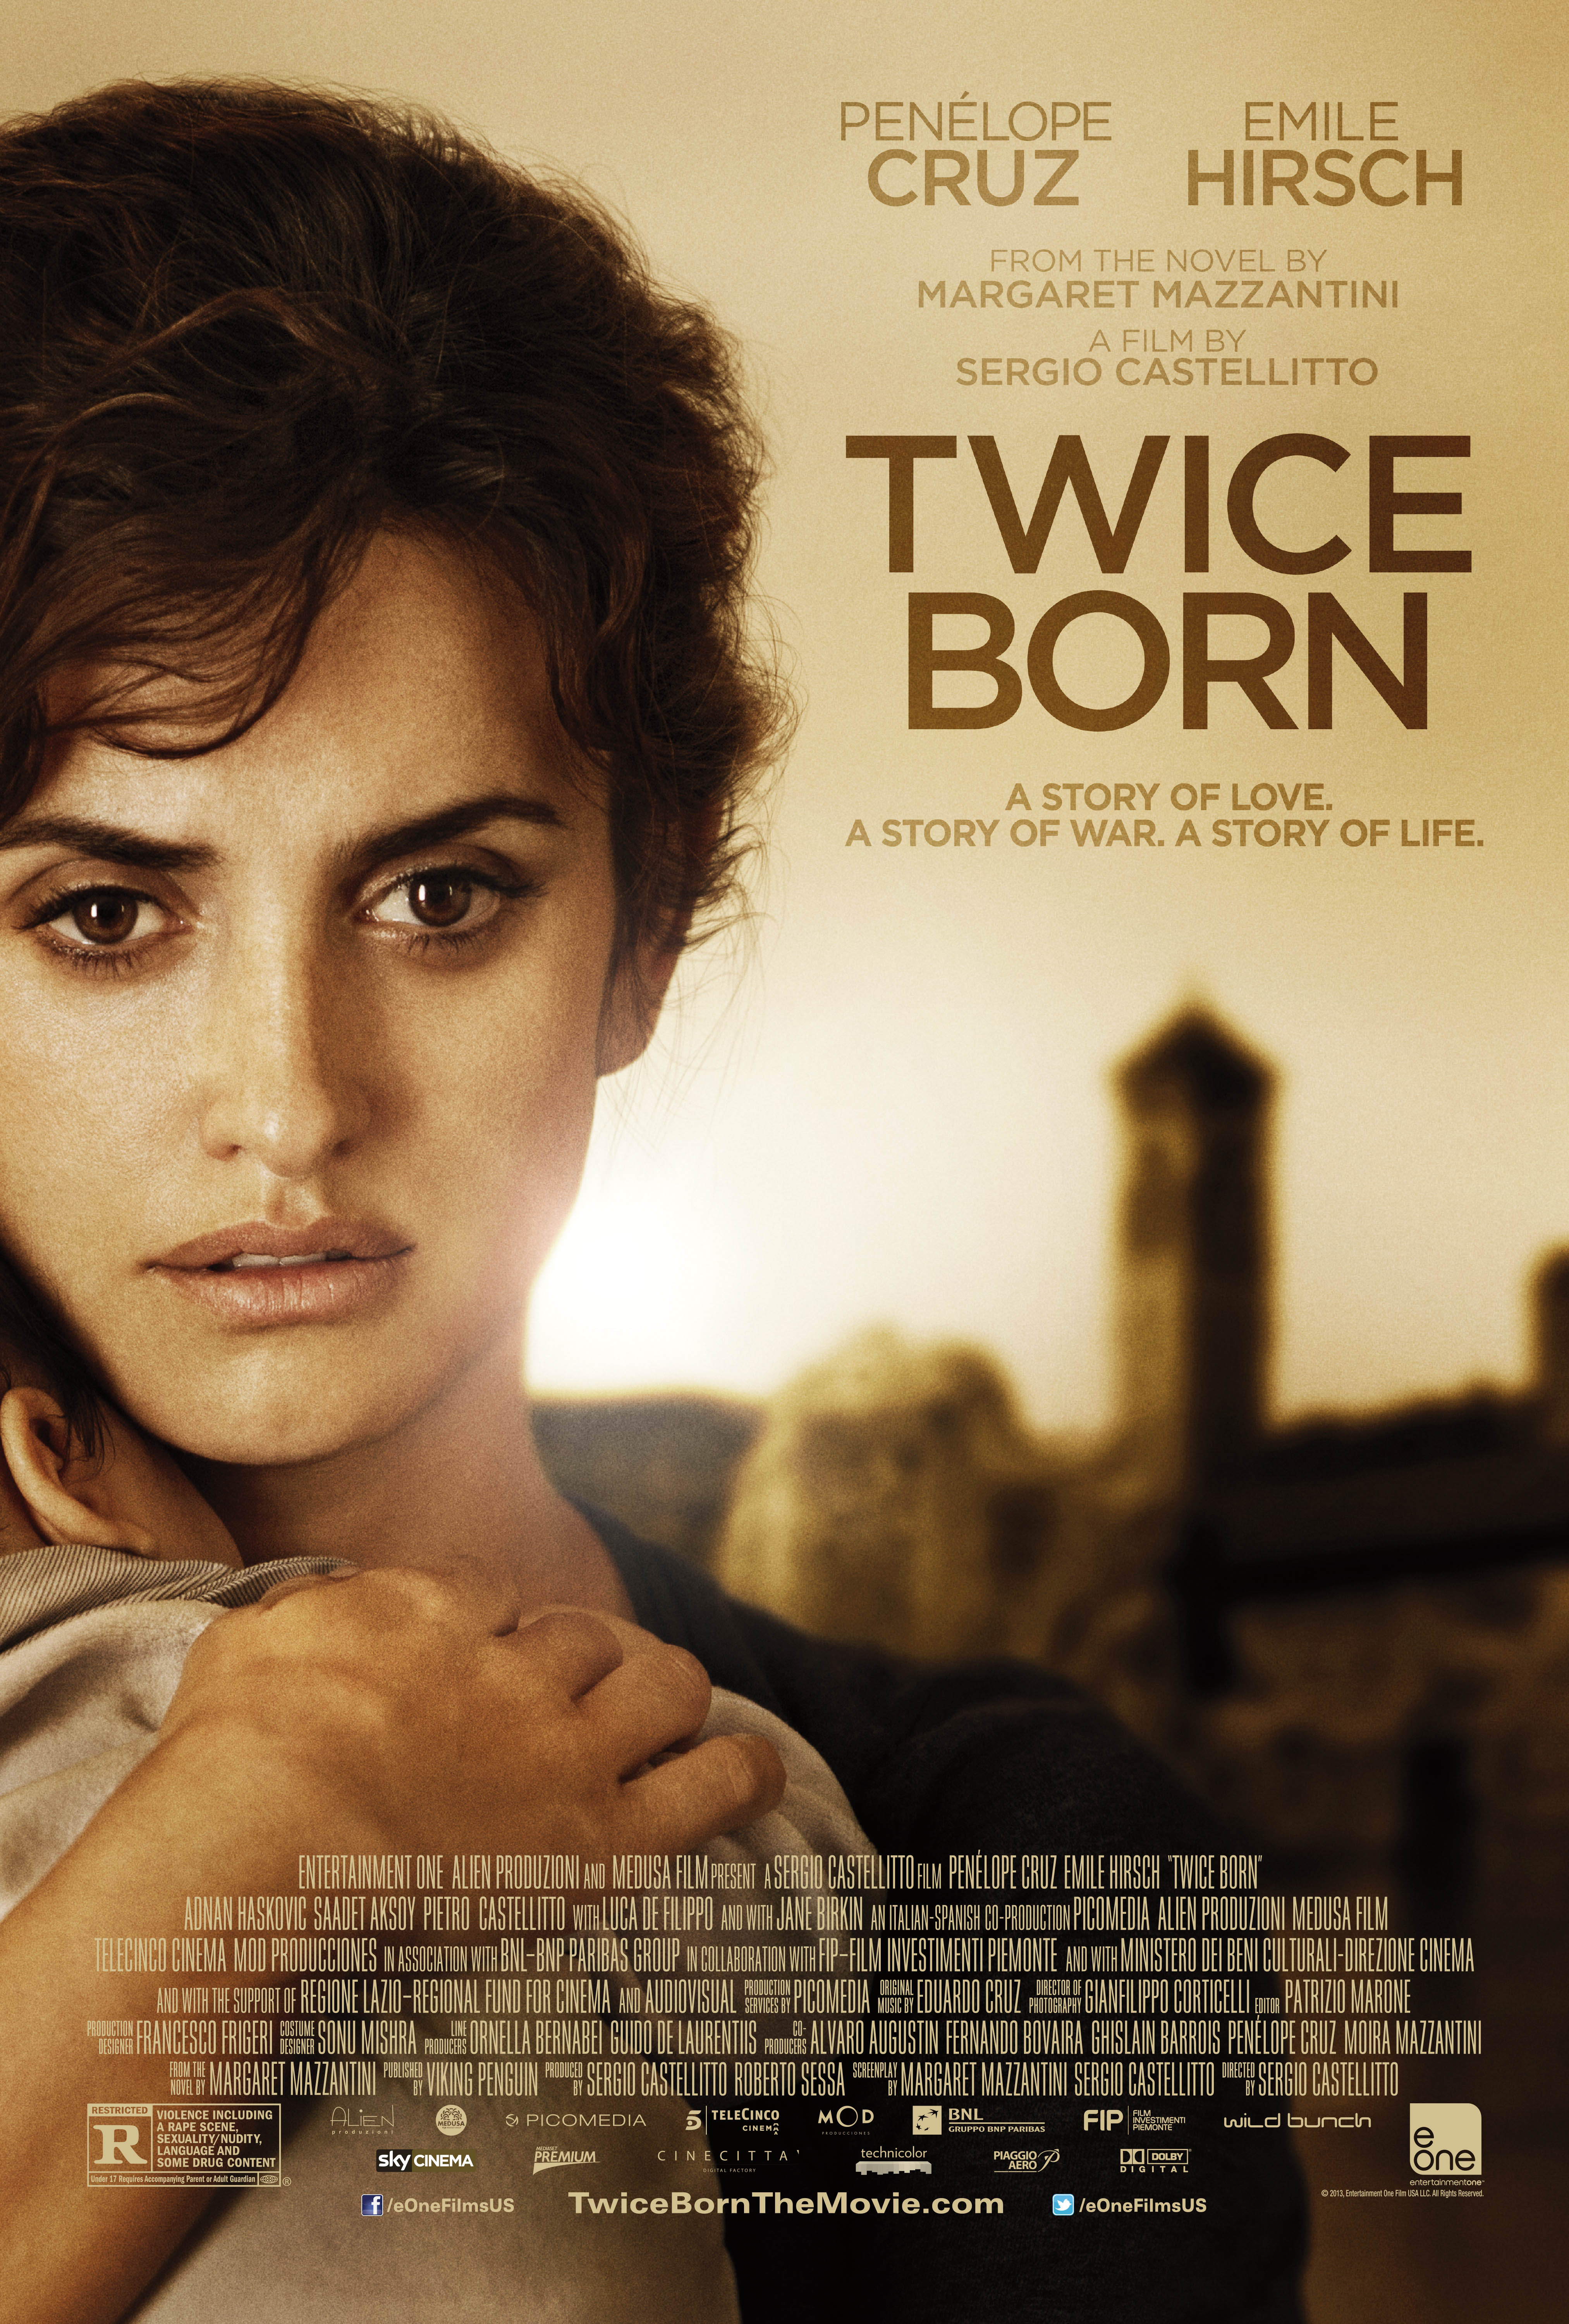 Penelope Cruz: vividness, sexuality and talent 55